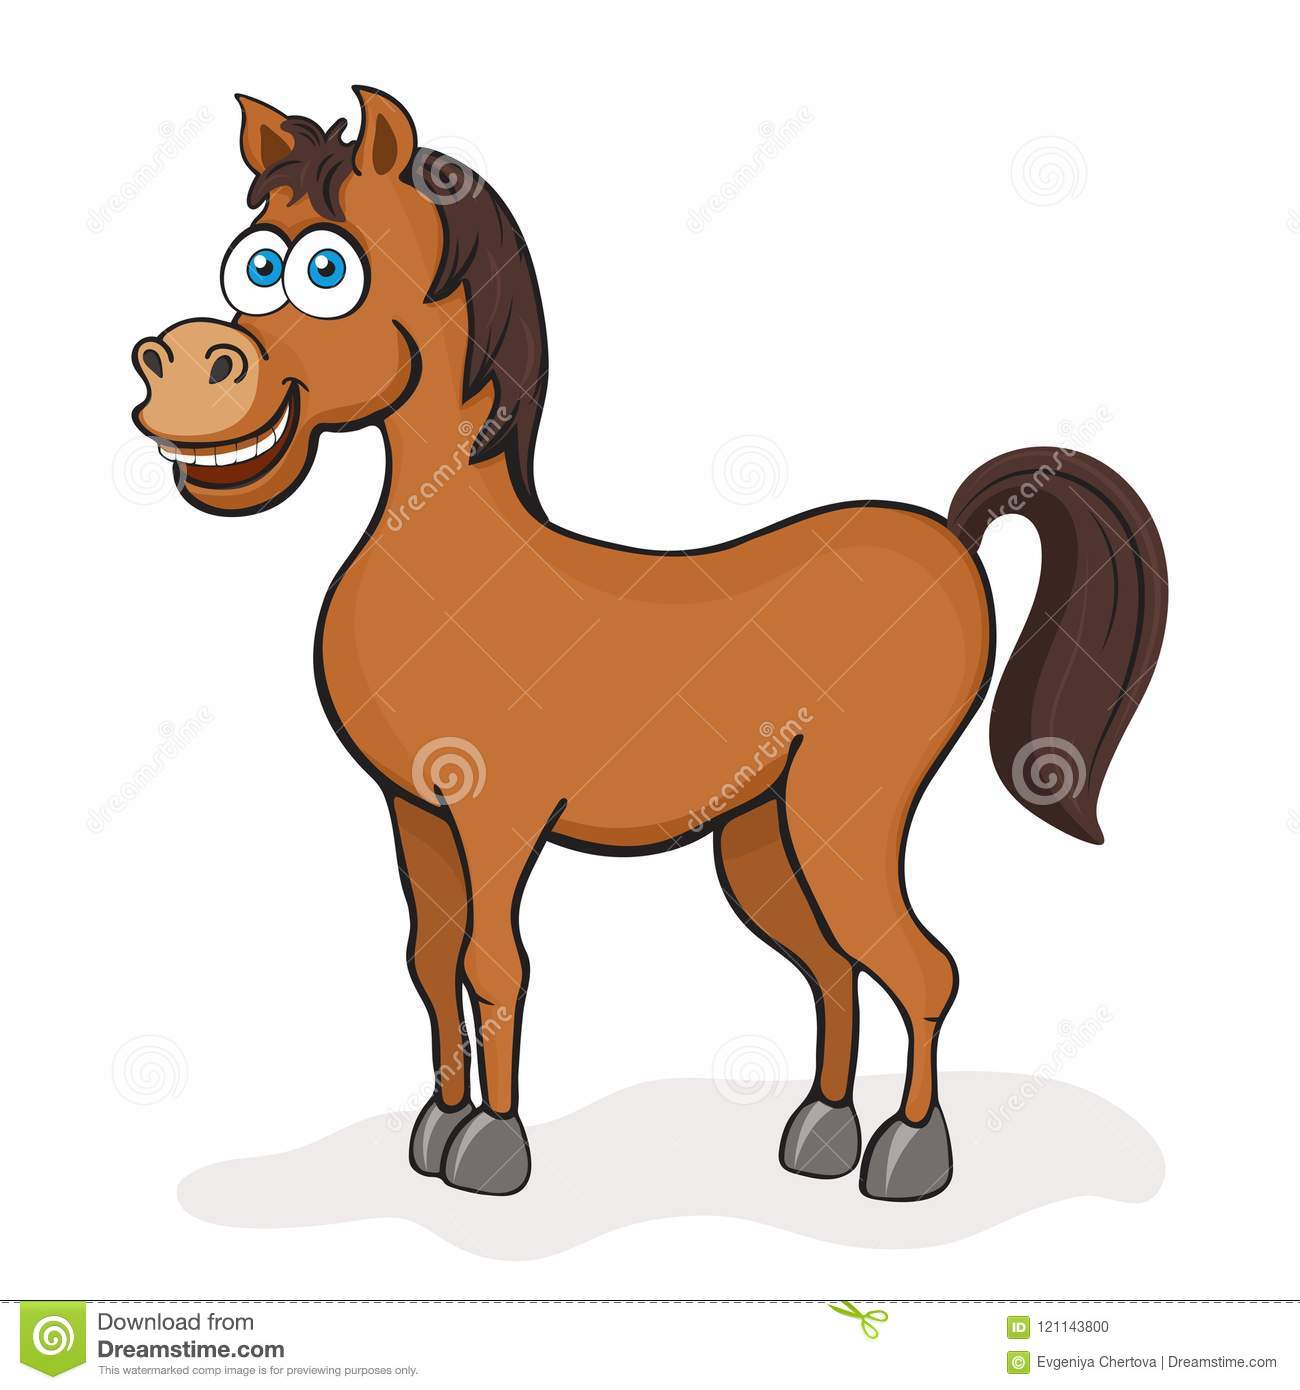 Horse Cartoon Drawing Vector Illustration Funny Cute Painted Brown Horse With Blue Eyes Isolated On White Background Animated C Stock Vector Illustration Of Happy Character 121143800